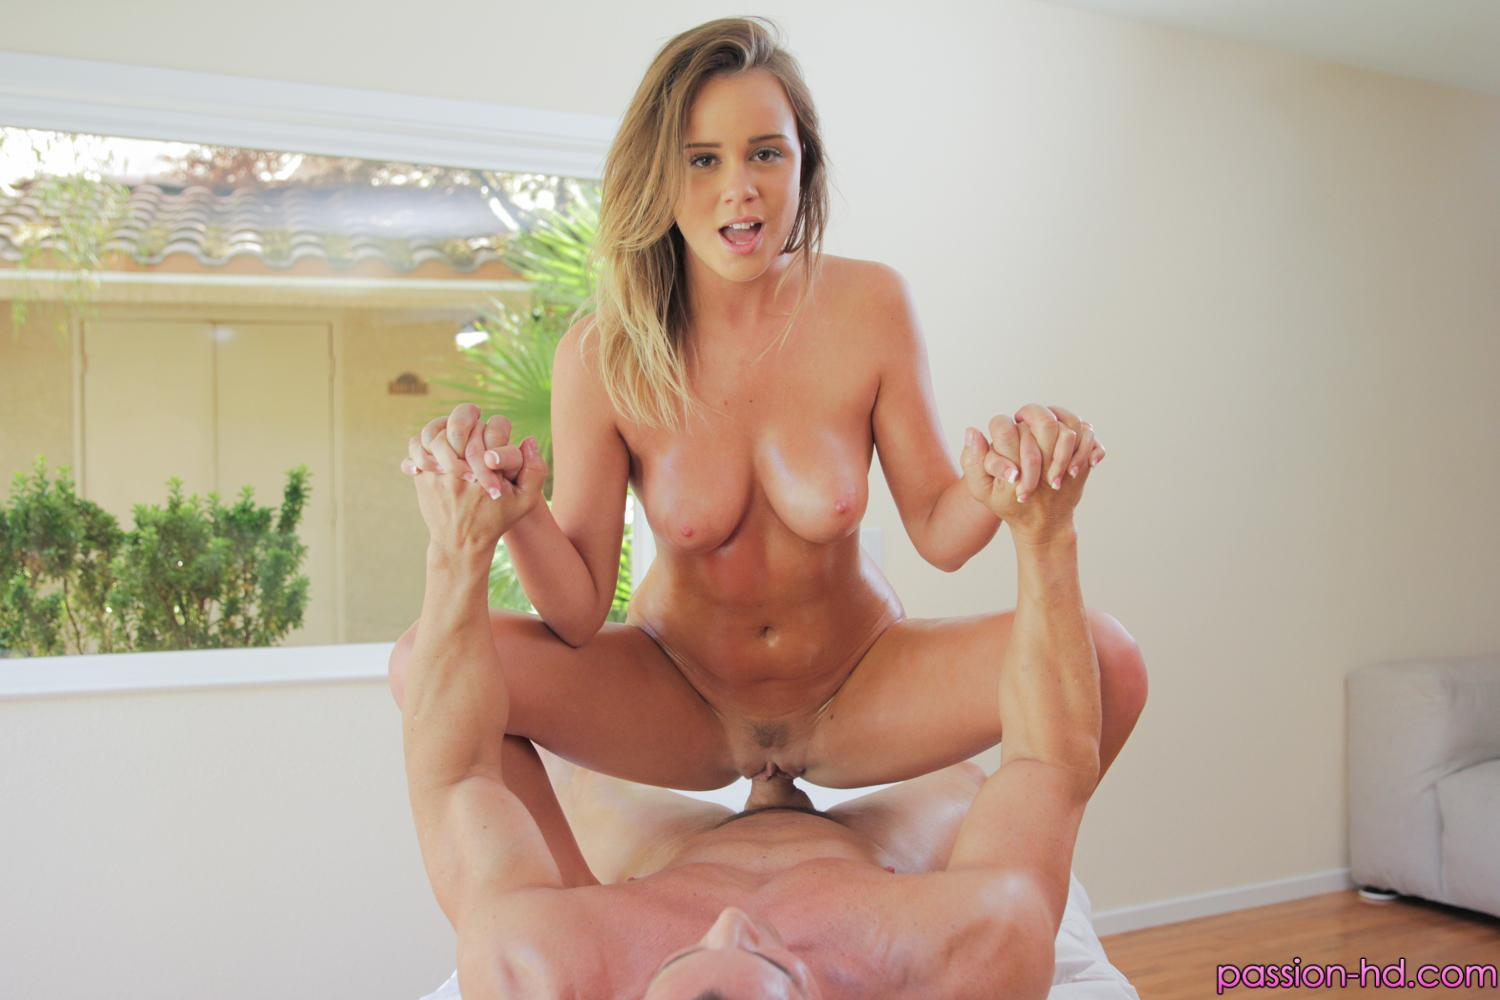 Hd Passion Sexy Alexis Adams Gets Pampered